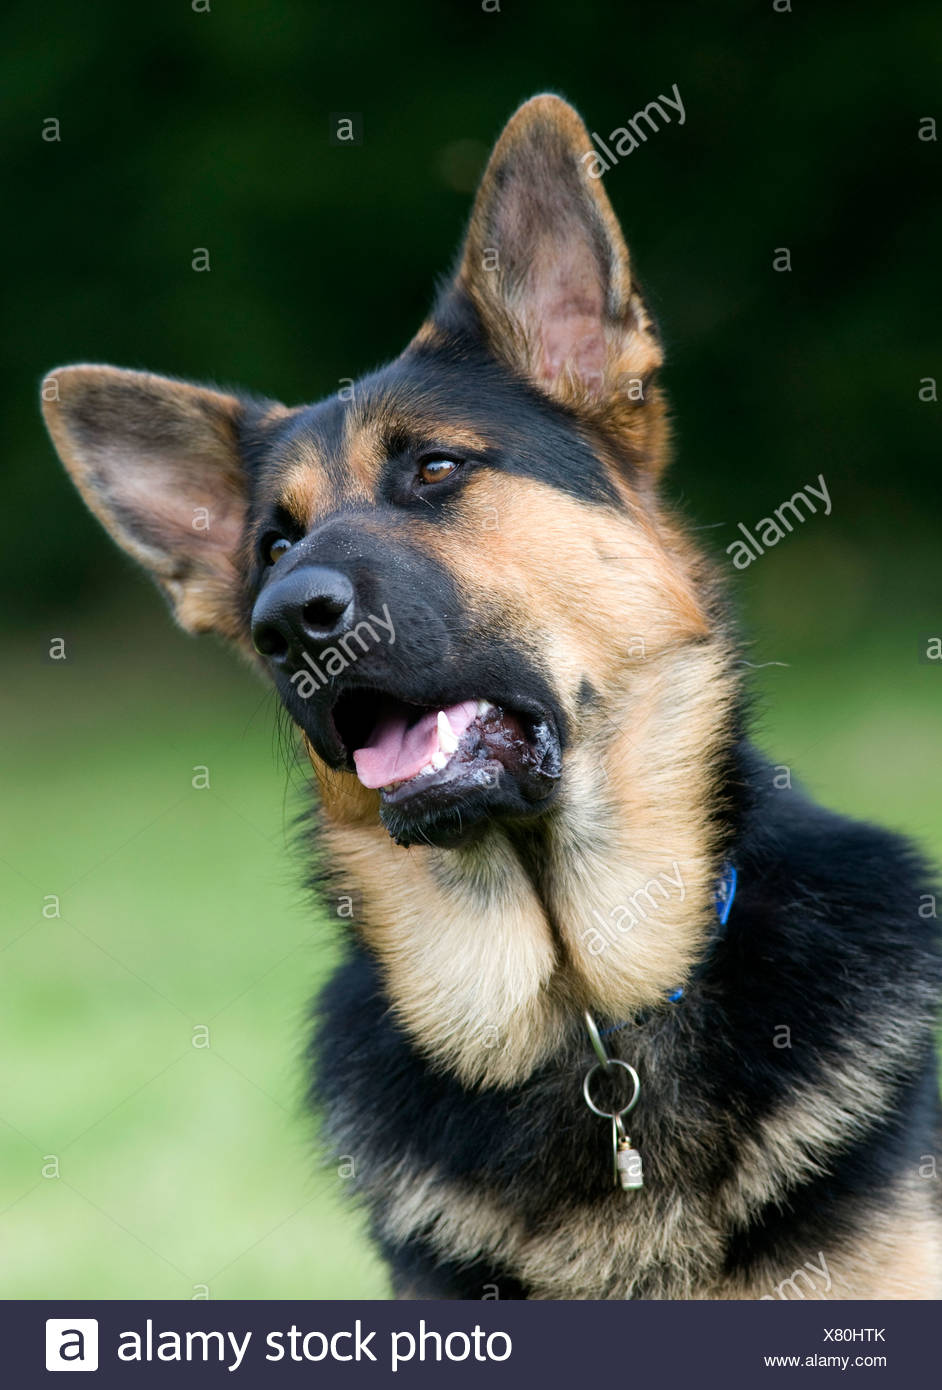 German Shepherd Dog Alsatian UK Stock Photo